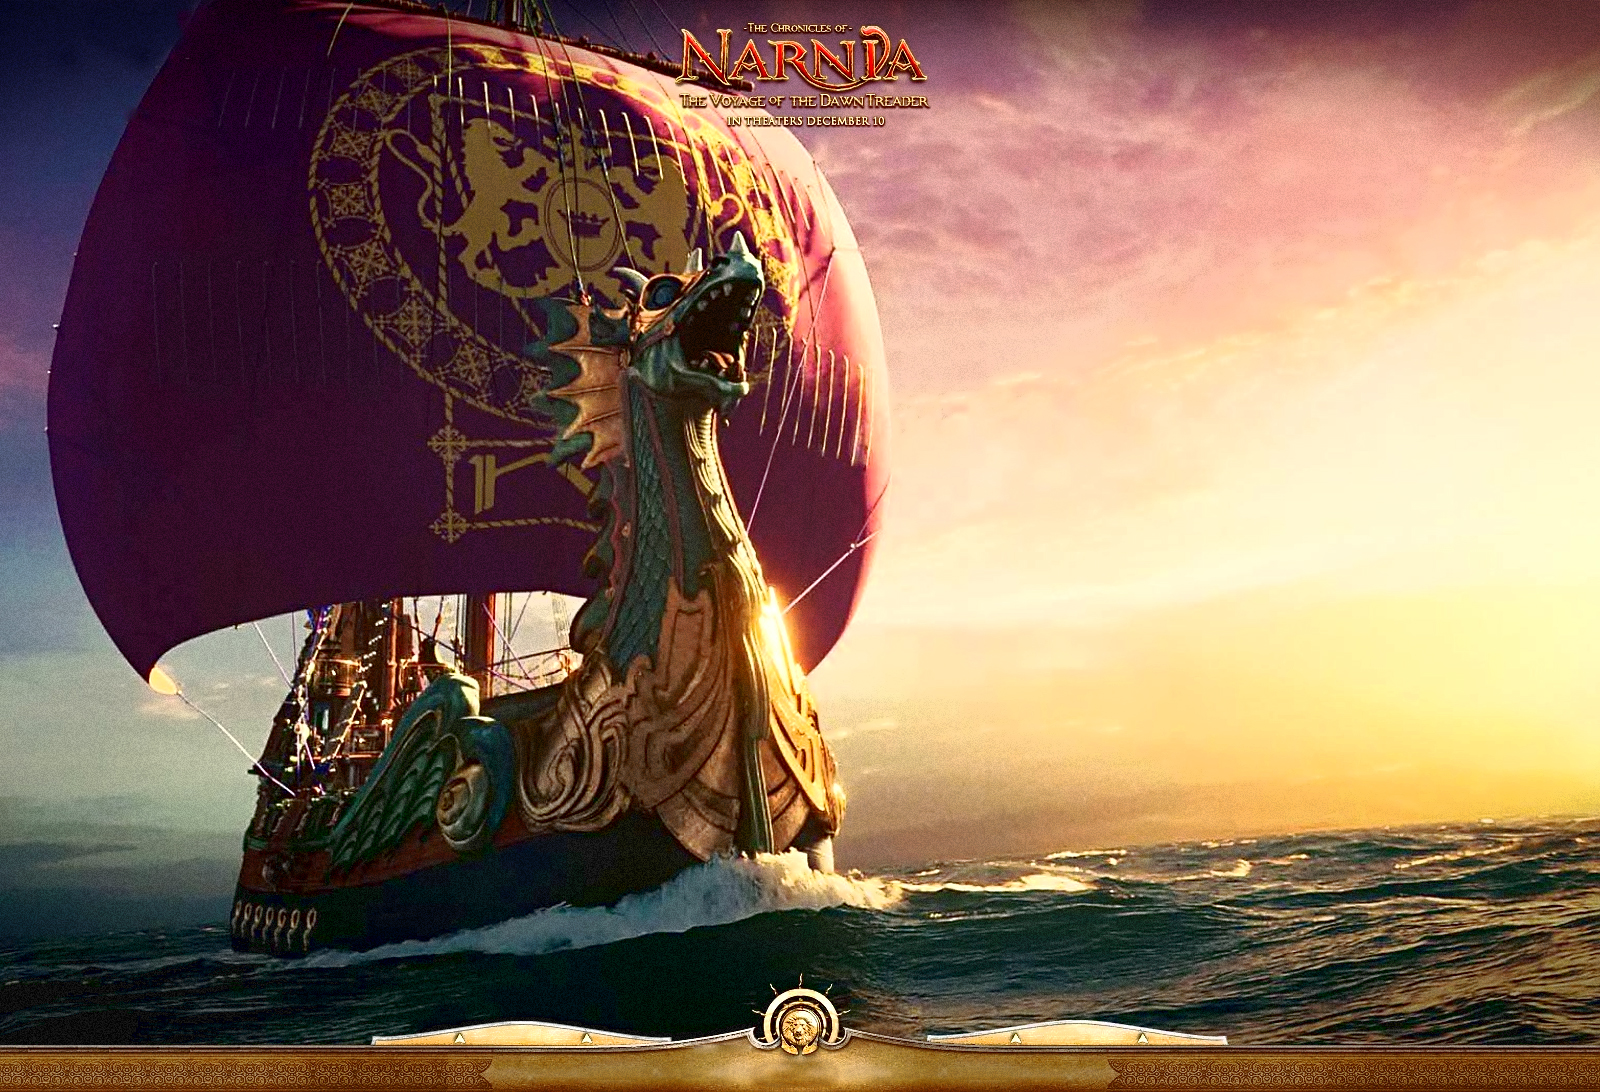 1600x1092 - The Chronicles of Narnia: The Voyage of the Dawn Treader Wallpapers 5